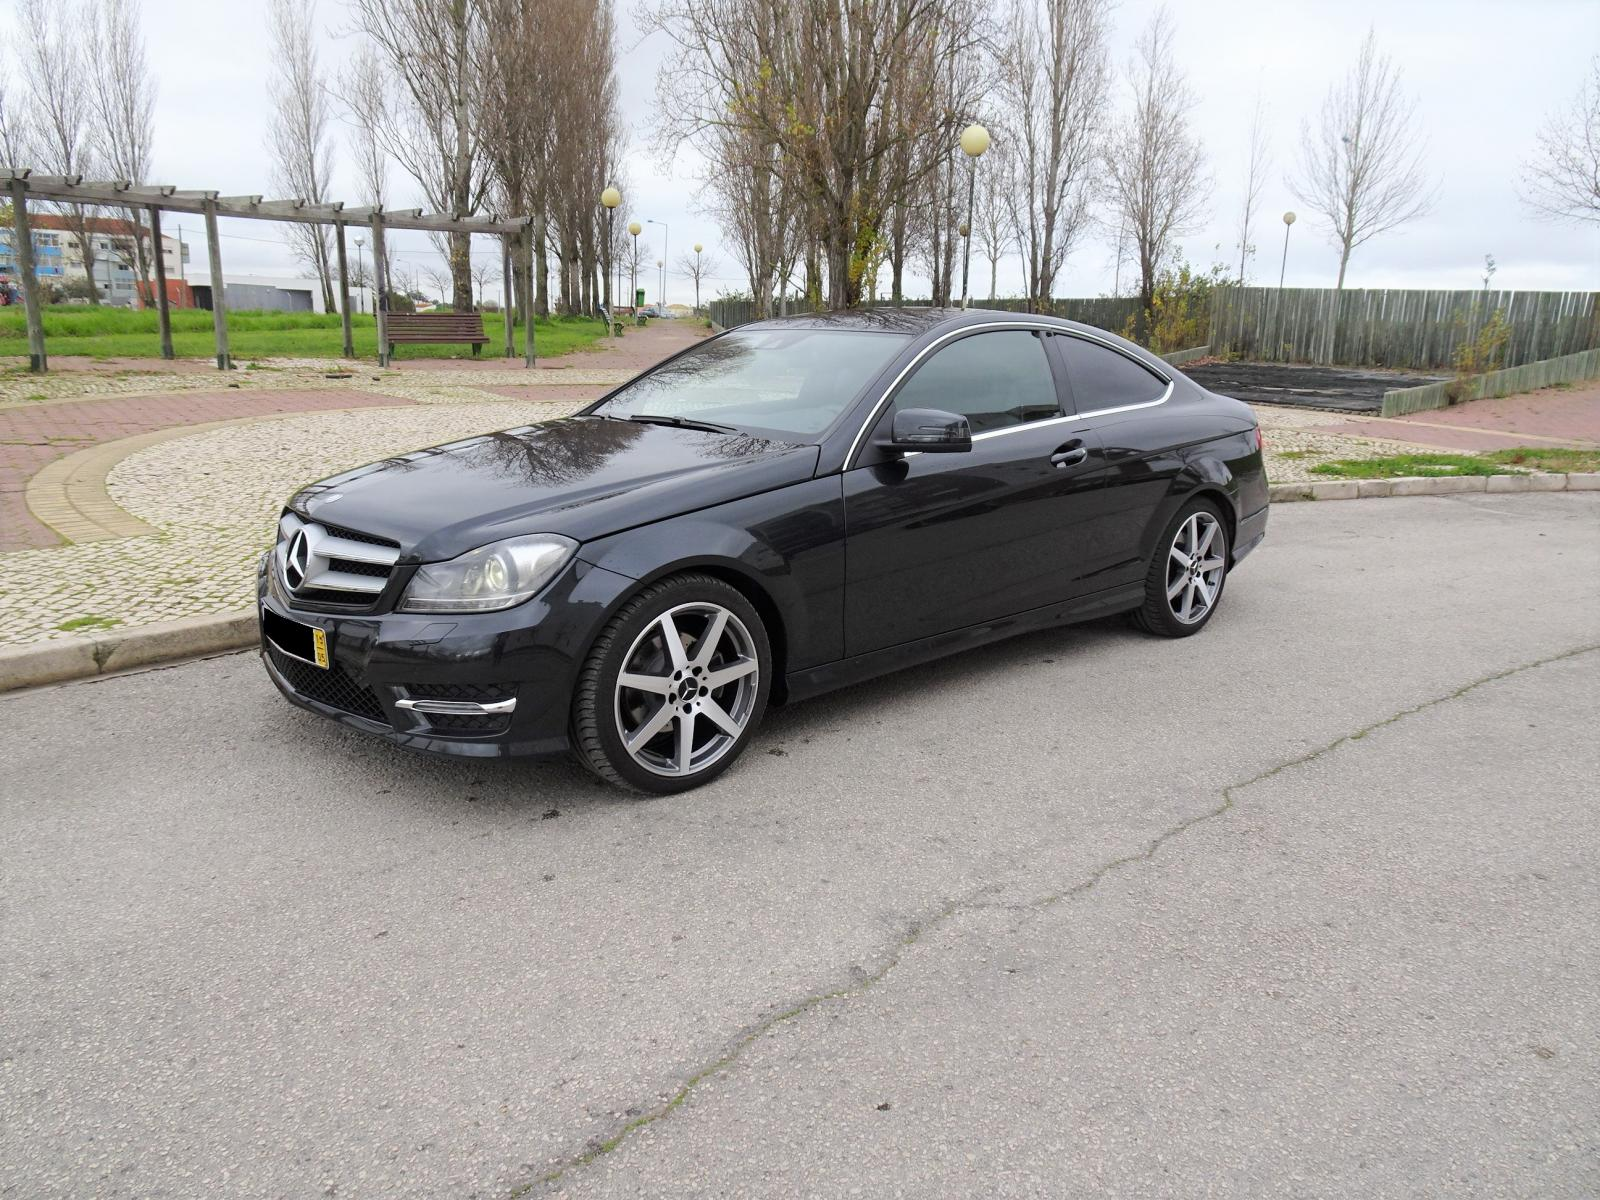 Mercedes-Benz-C 250 CDI Coupe AMG Cx Auto 7G-Tronic